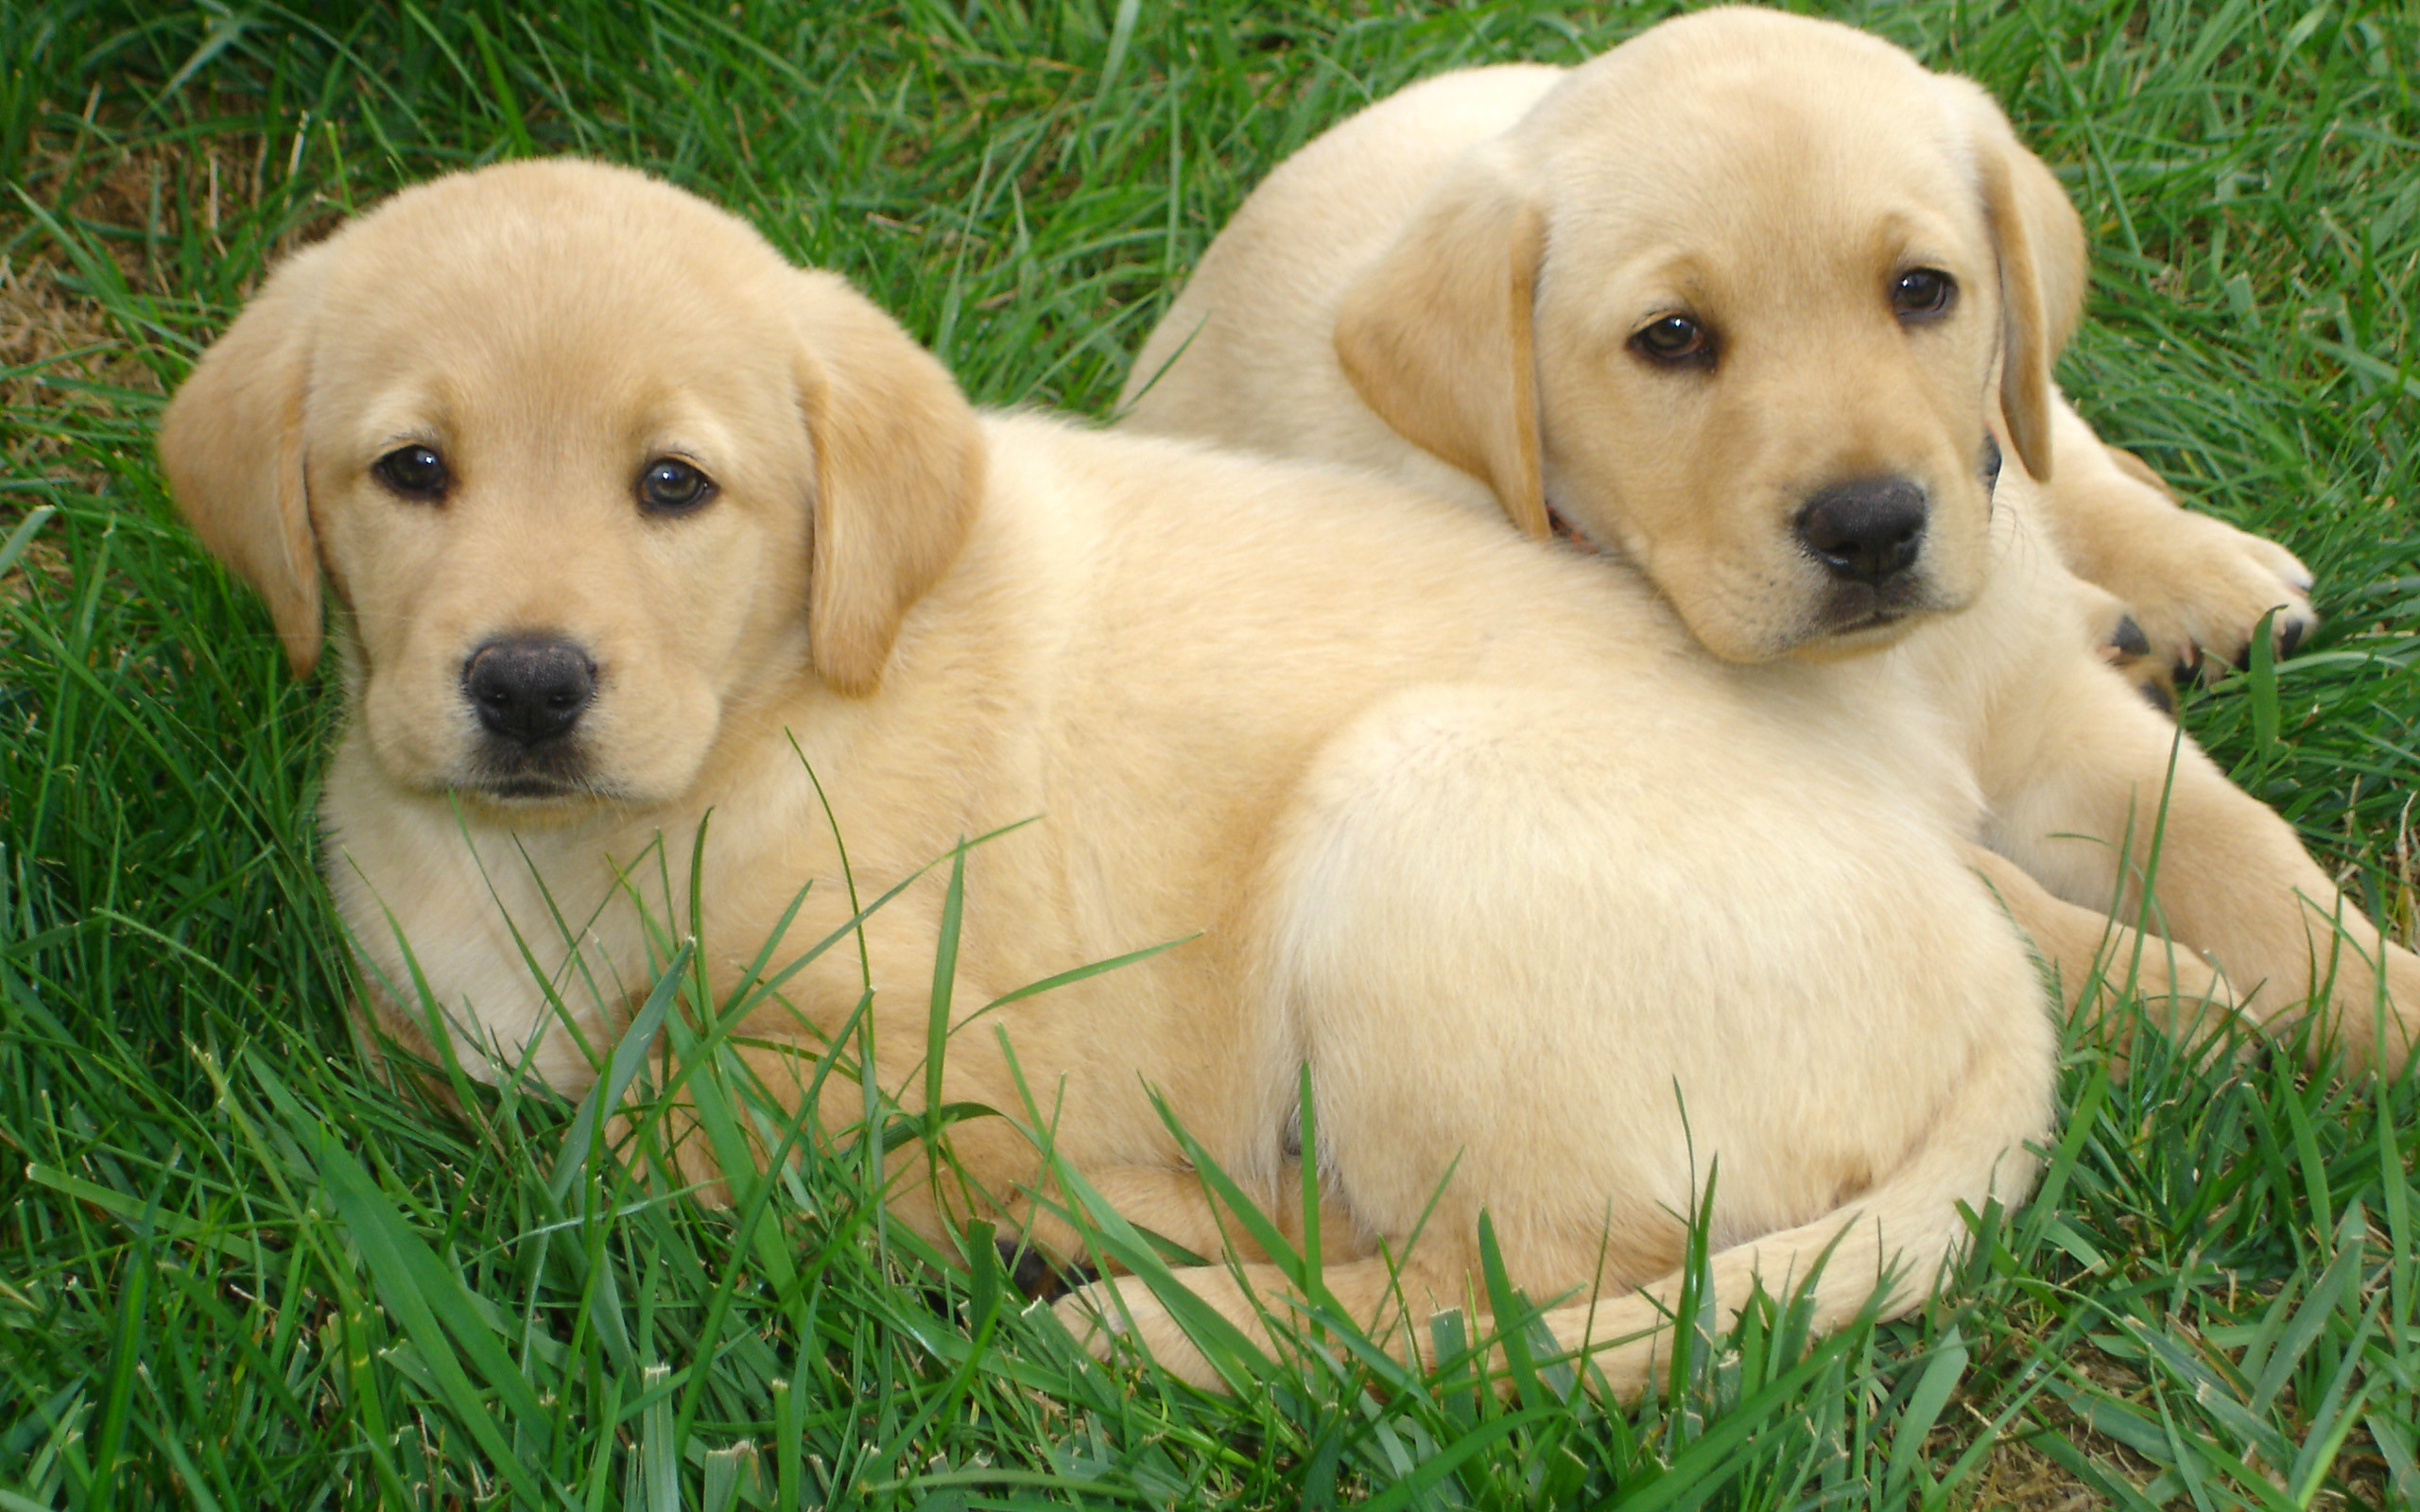 2560x1600 Yellow Lab Wallpaper For Computer 1,1 Mbyte High Resolution